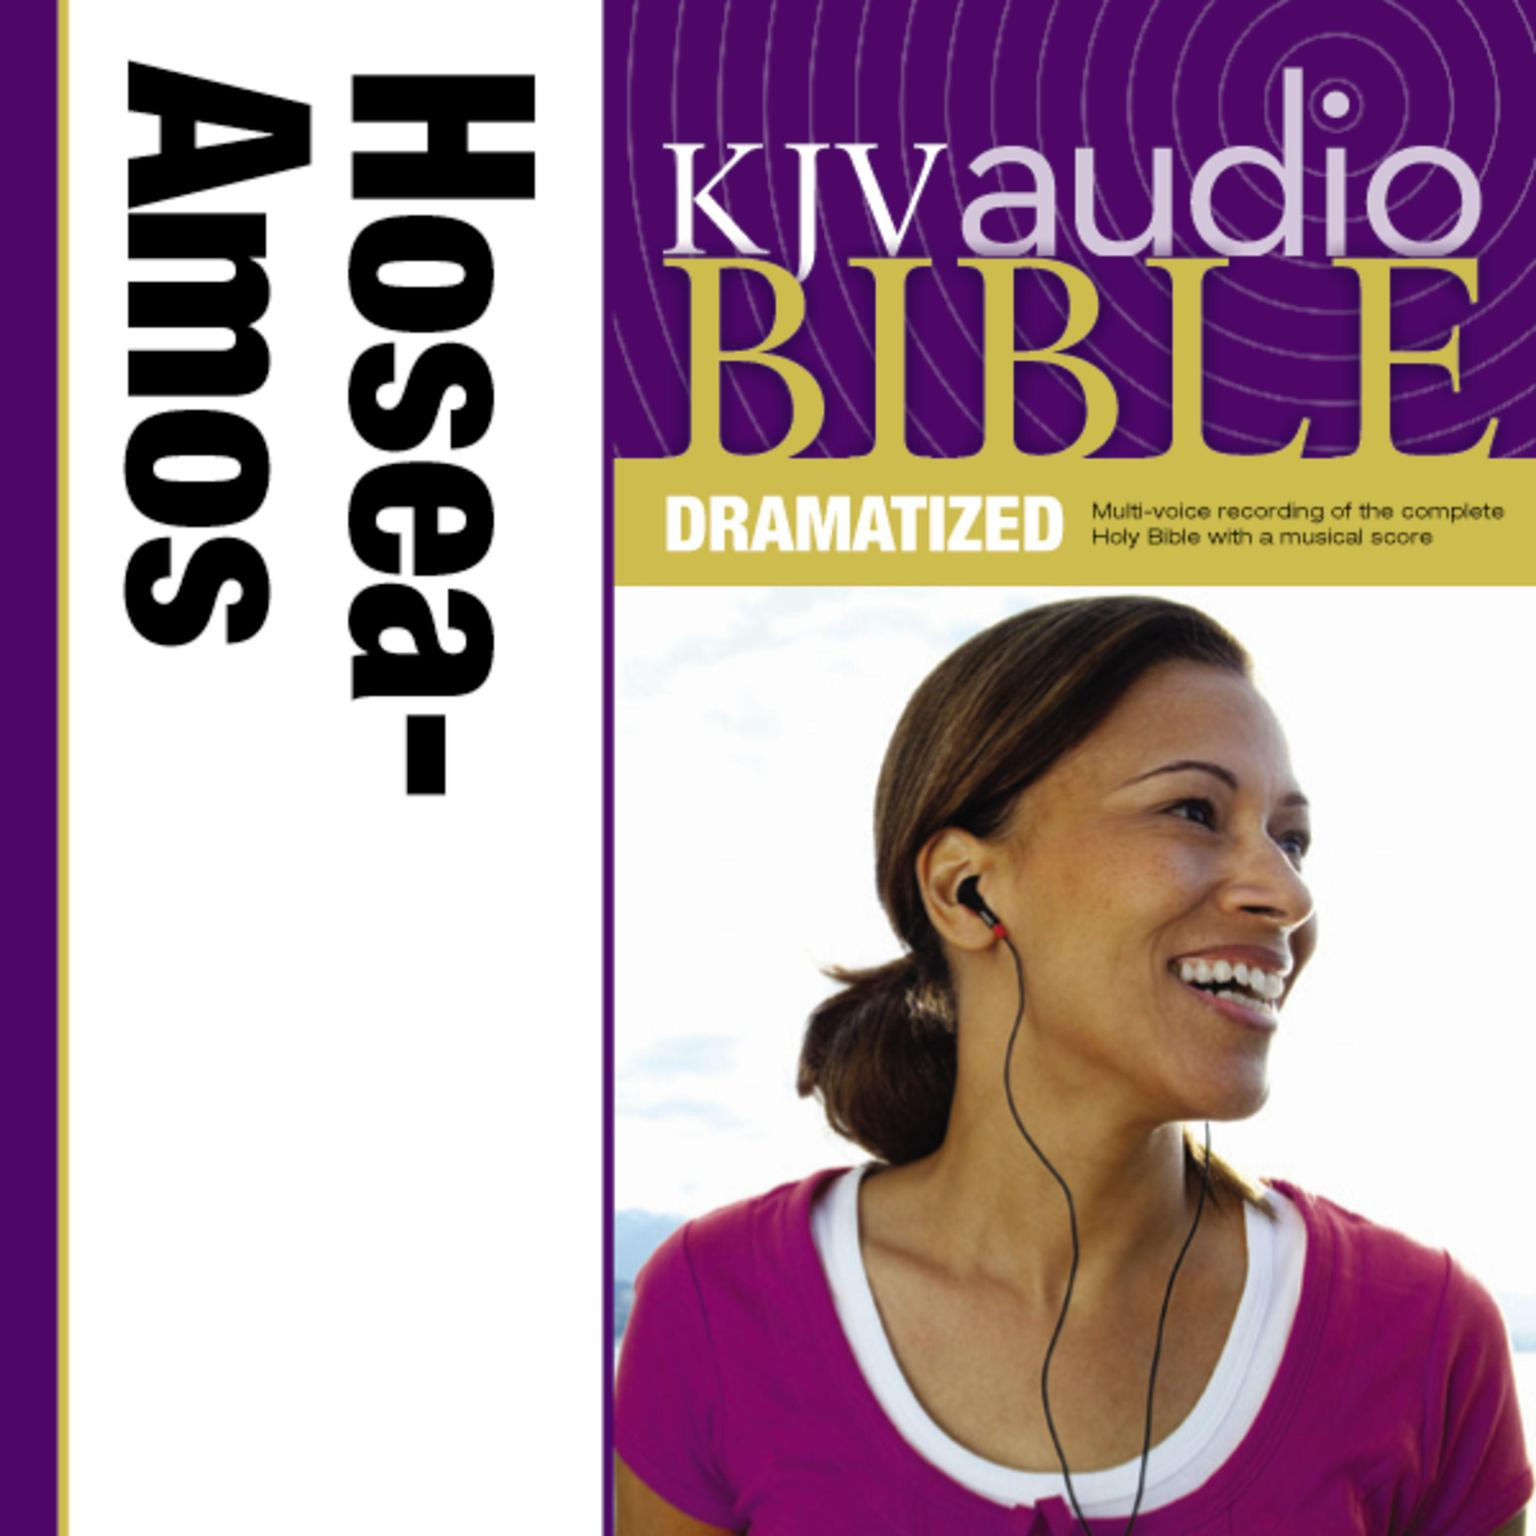 Printable KJV, Audio Bible, Dramatized: Hosea, Joel, and Amos, Audio Download: Hosea, Joel, and Amos Audiobook Cover Art